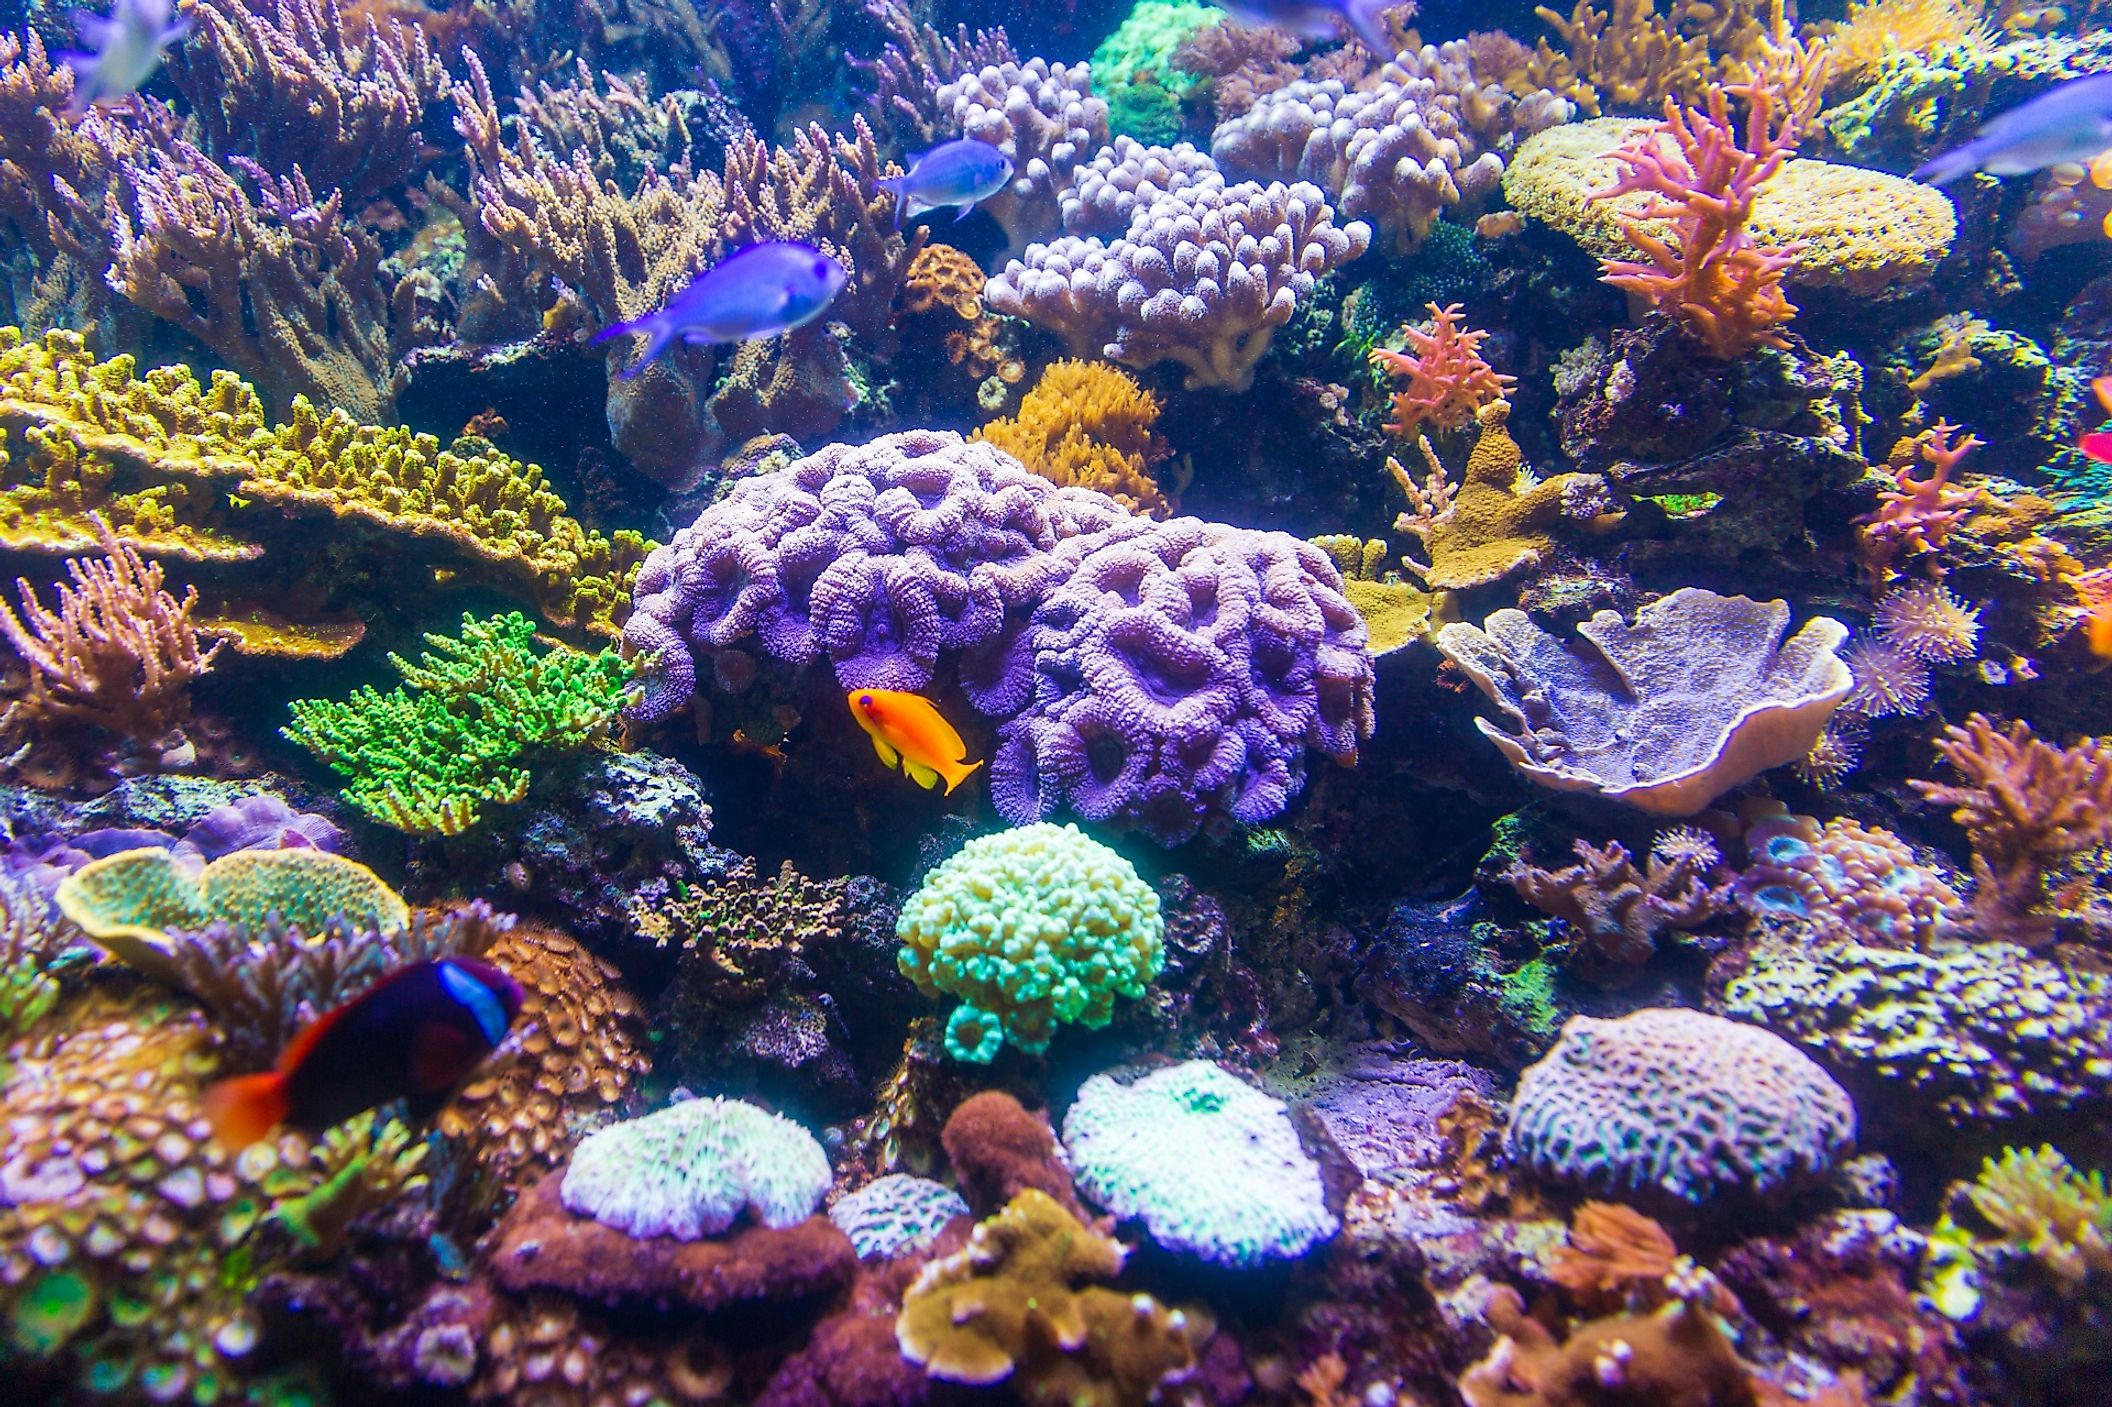 Human being's actions such as pollution, destructive fishing practices, and coral mining all hurt the coral reefs.